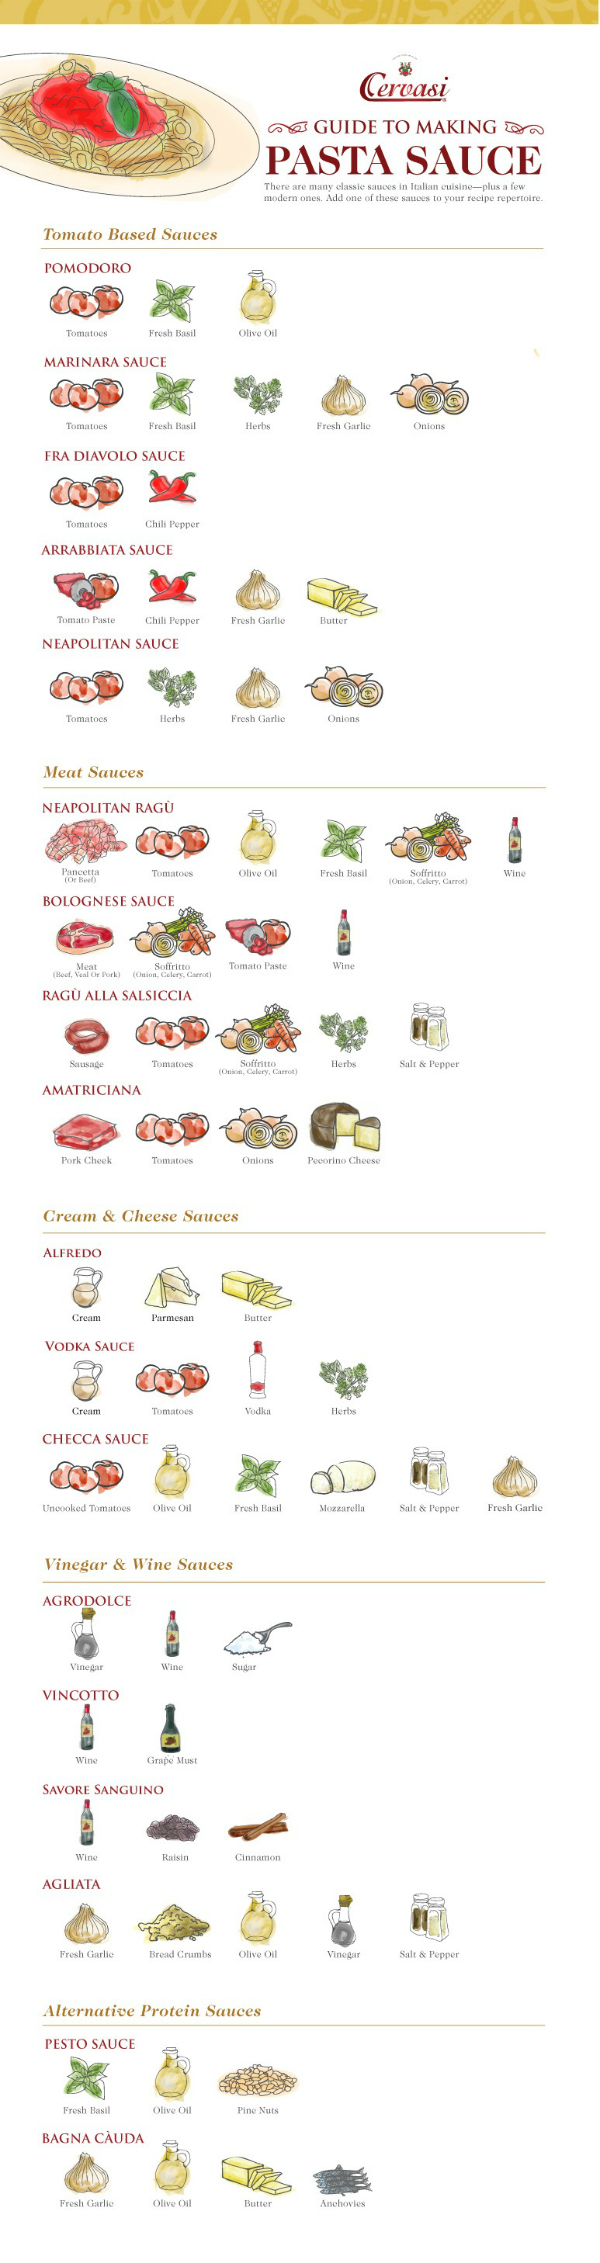 Guide to Making Pasta Sauce